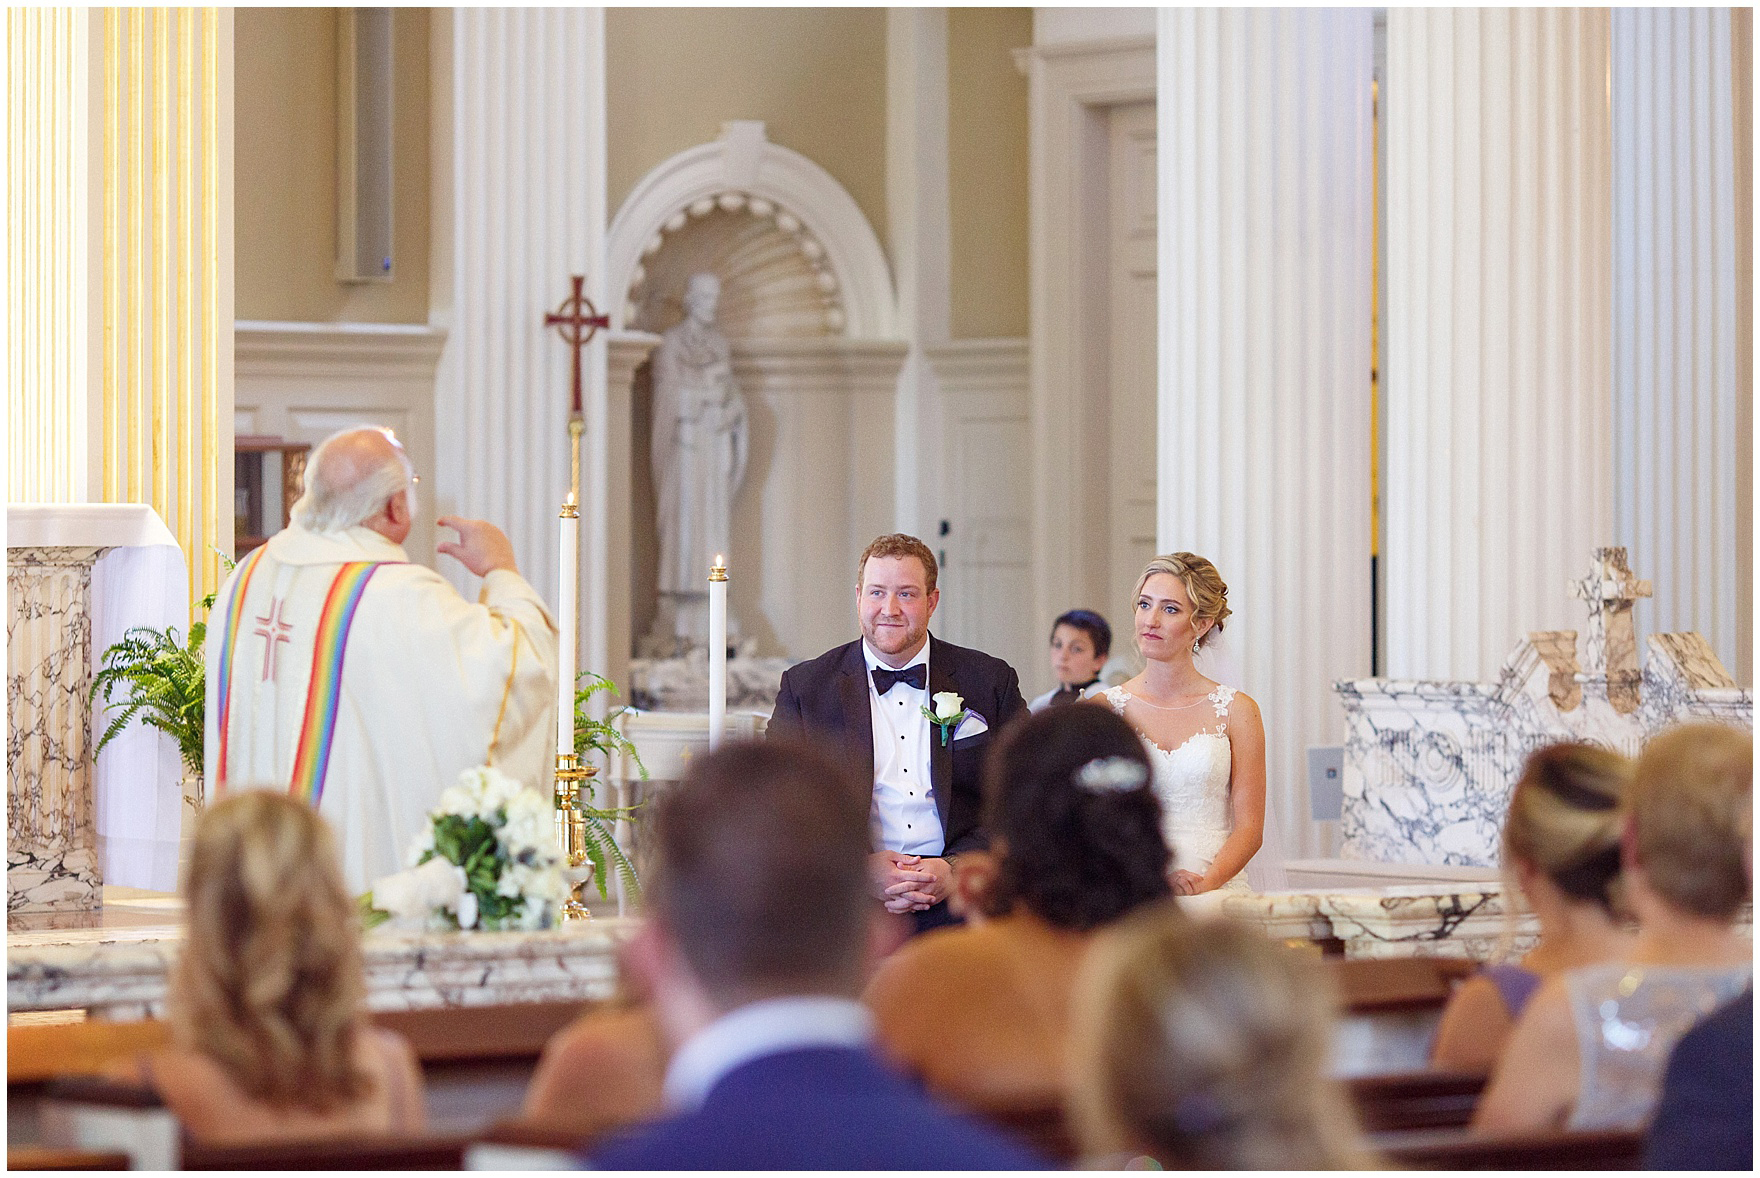 The bride and groom during the ceremony for a Glen Club Glenview Illinois wedding.